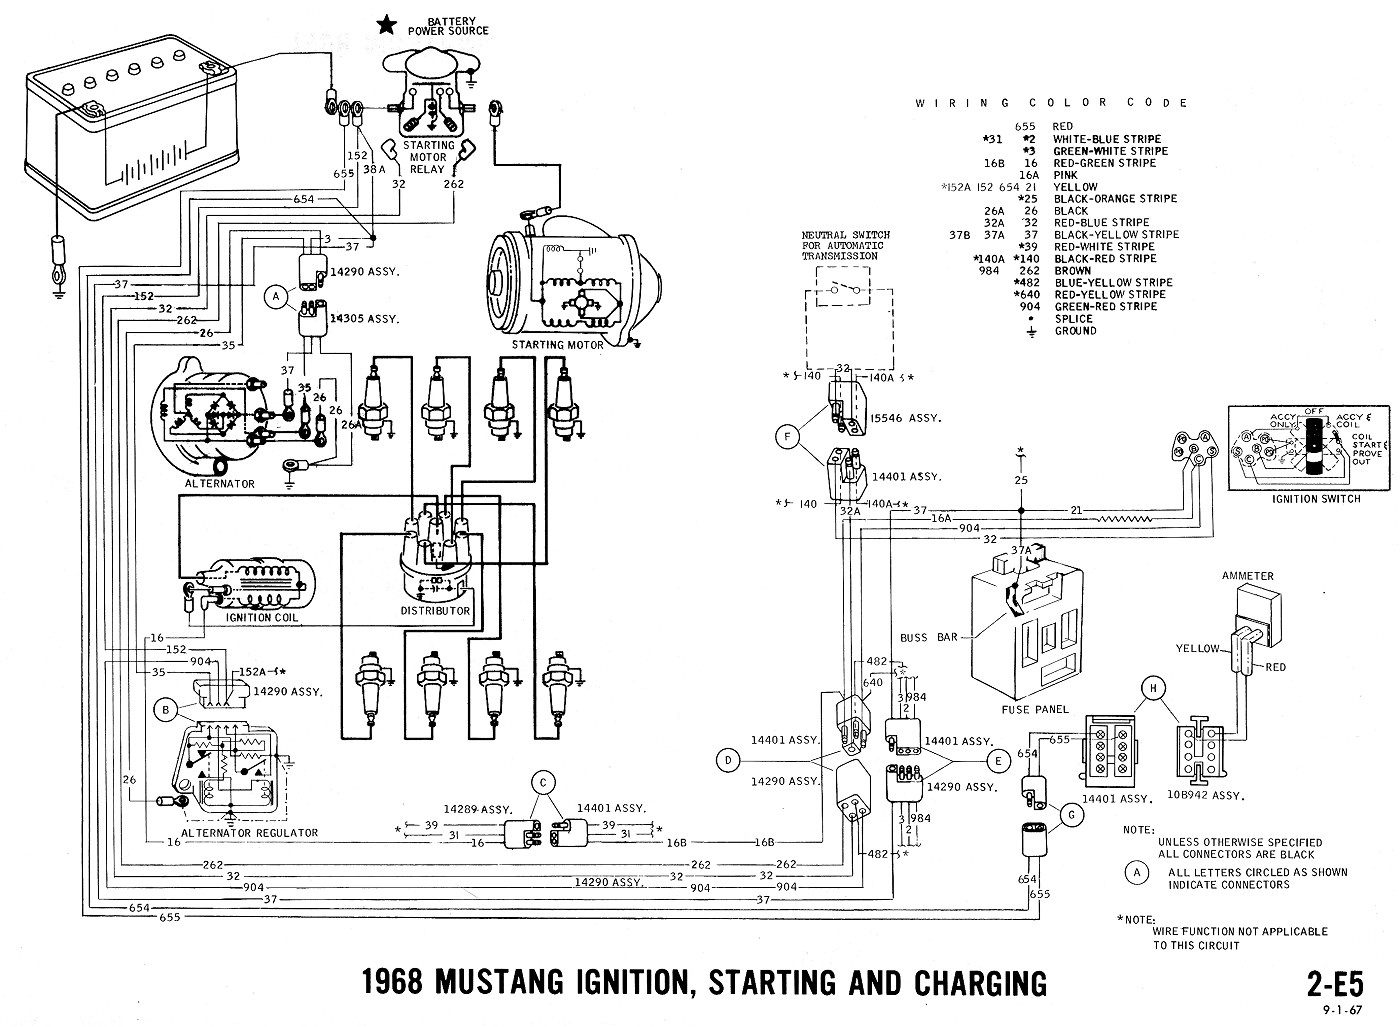 69 mustang wiring diagram wiring diagram and schematic design ford truck technical s and schematics section h wiring